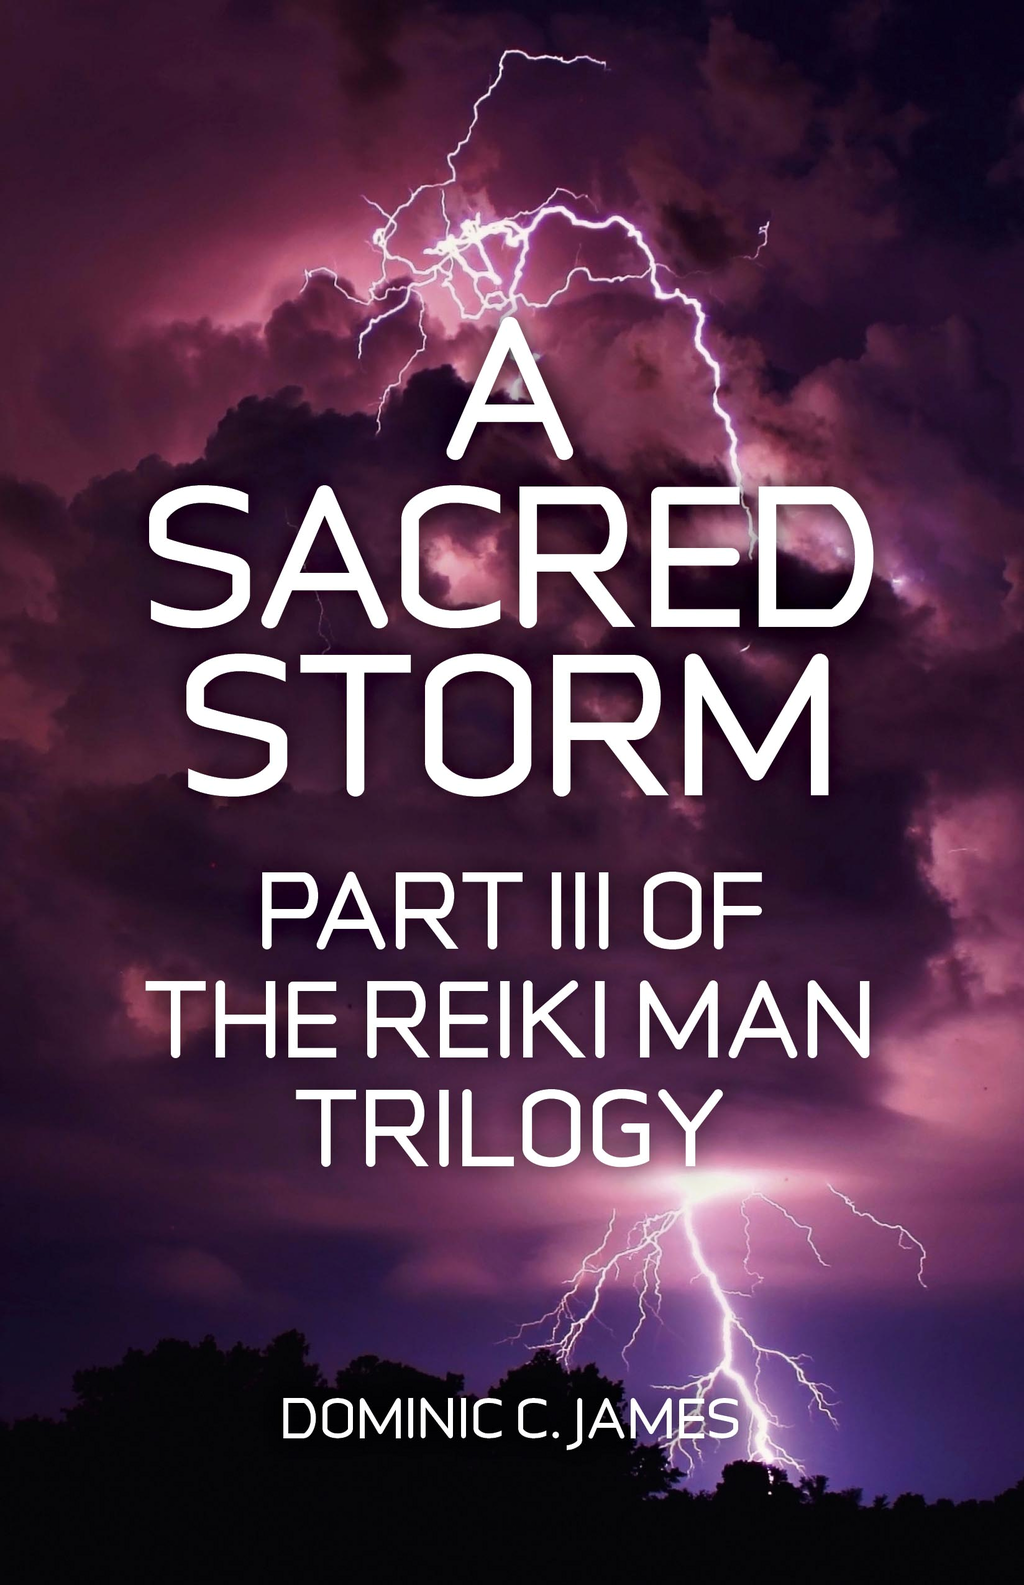 A Sacred Storm: Part III of The Reiki Man Trilogy By: Dominic C. James